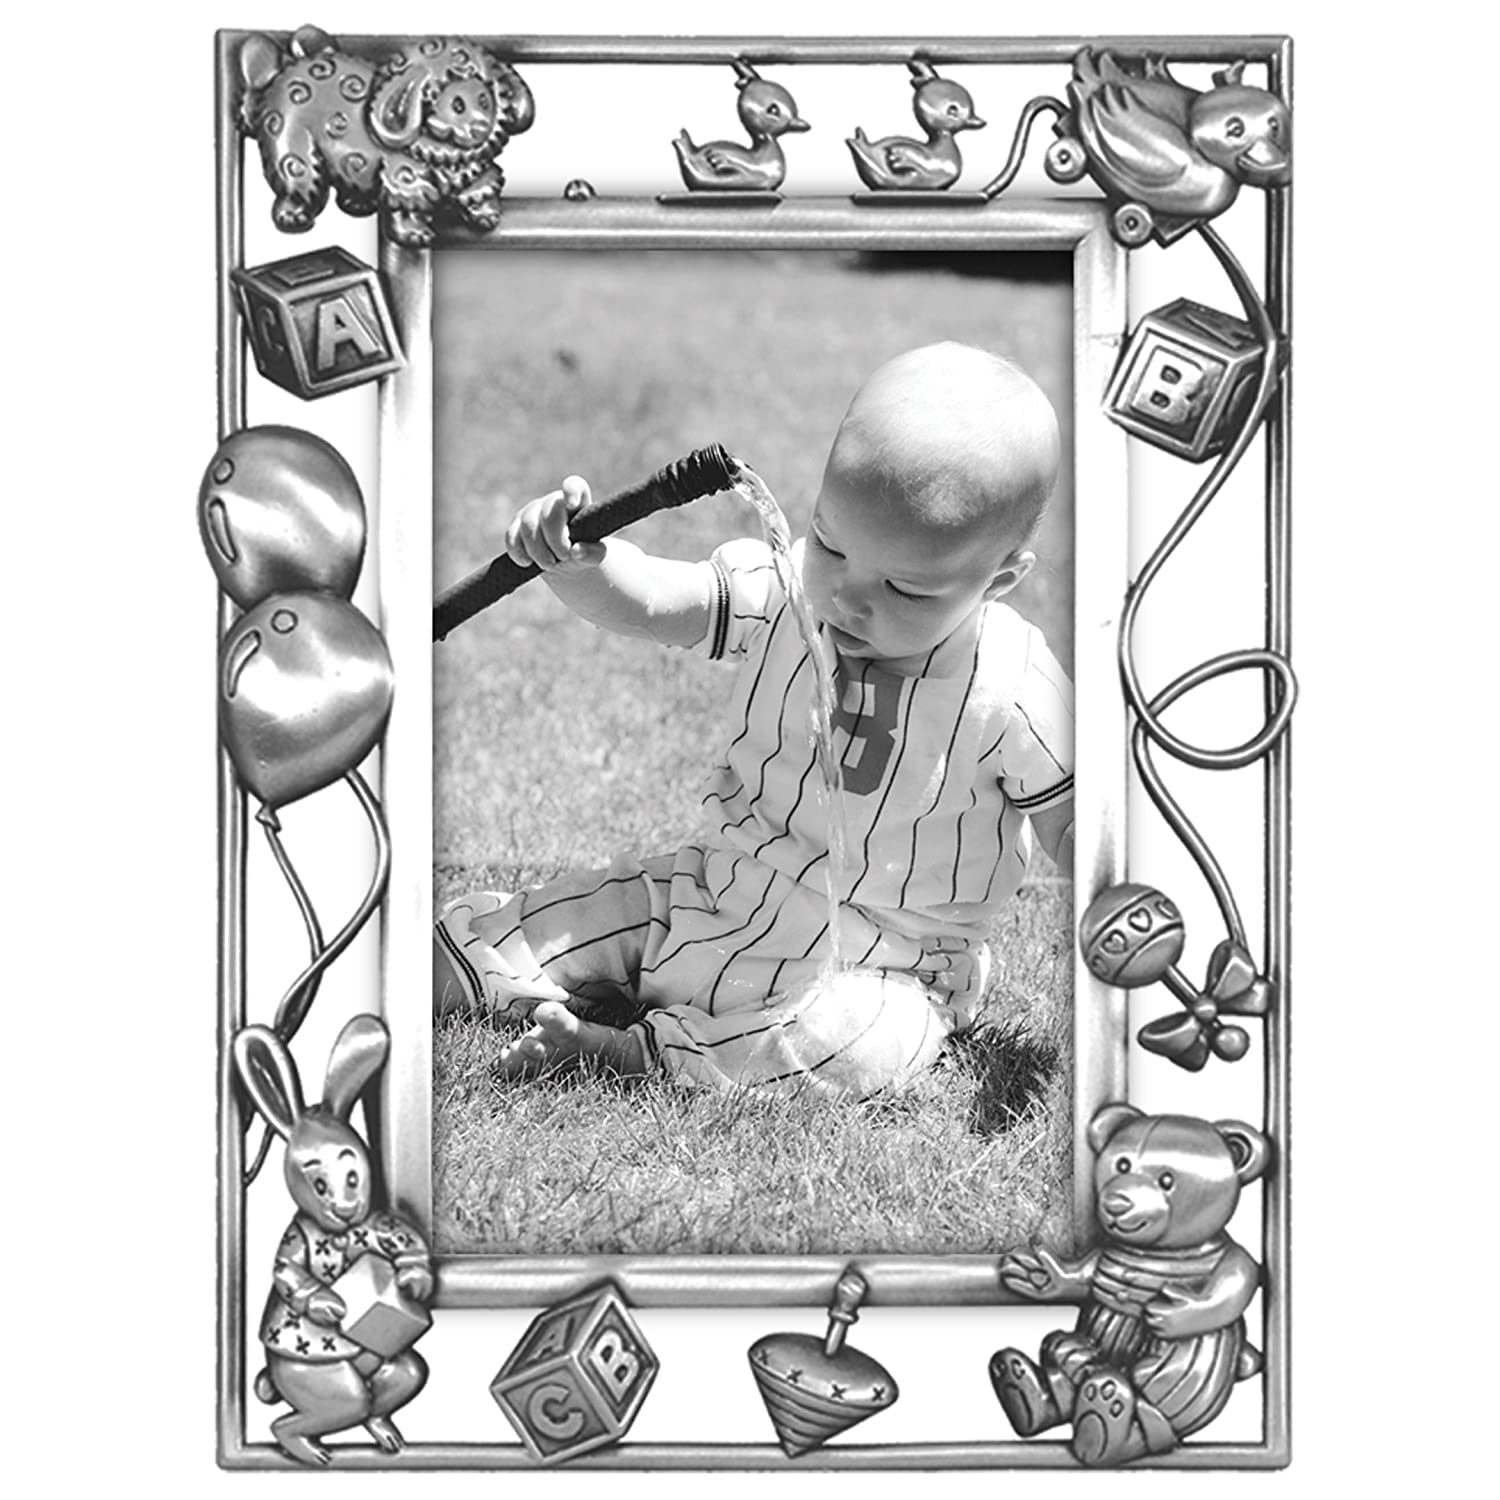 Home Profiles Nursery Parade Picture Frame, Silver Malden HP6264-46